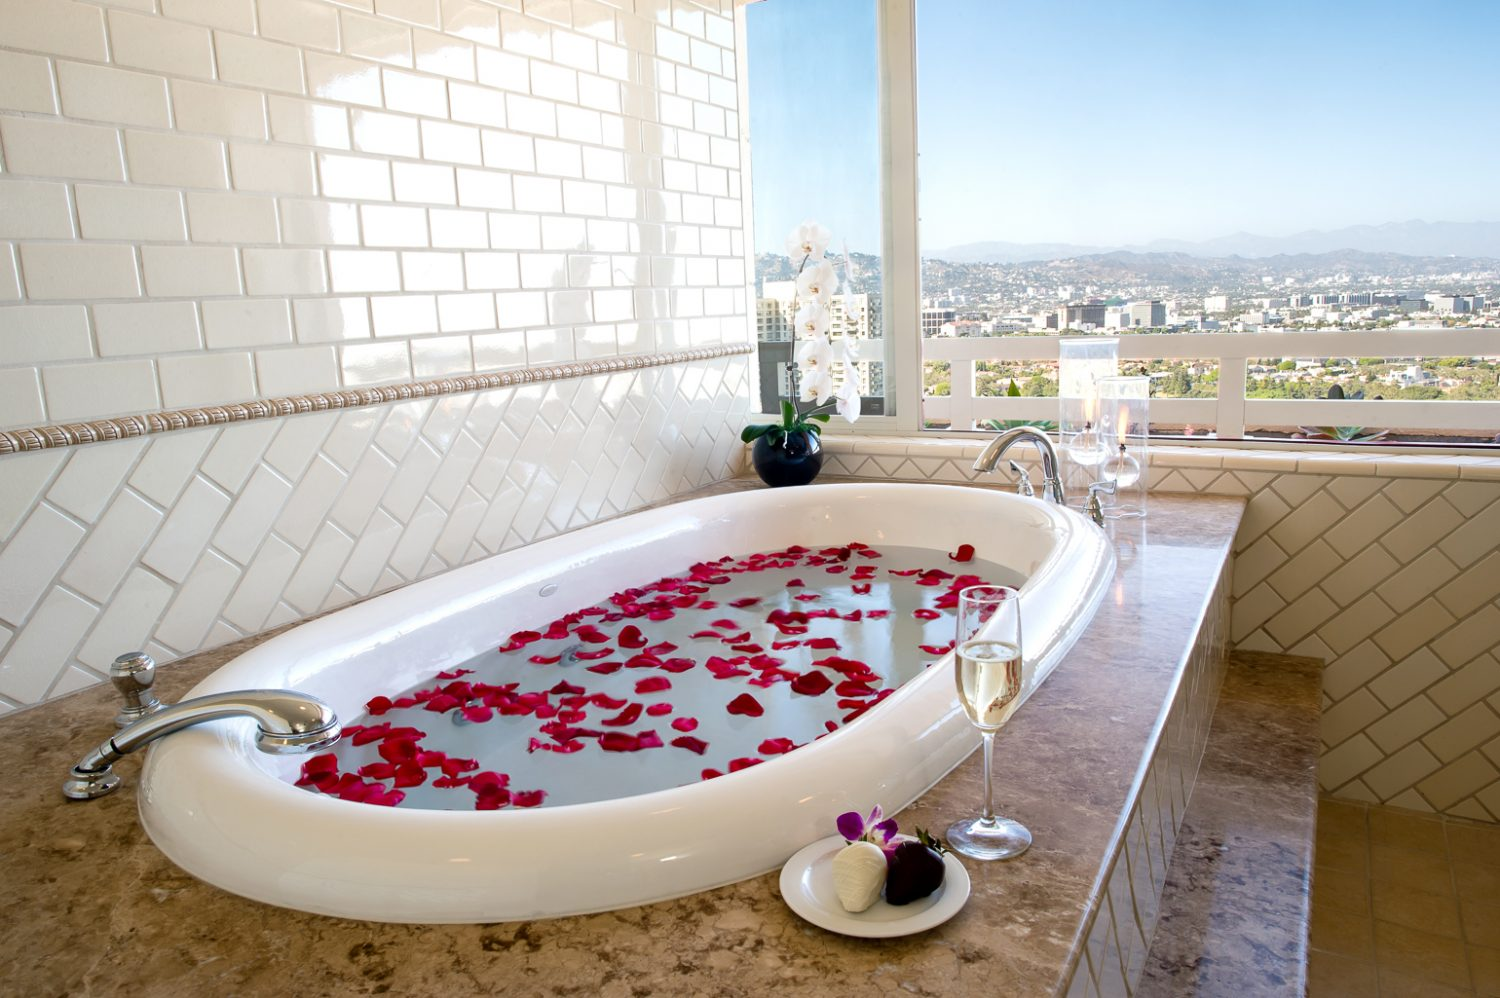 Whirlpool Bathtubs Los Angeles - Bathtub Ideas